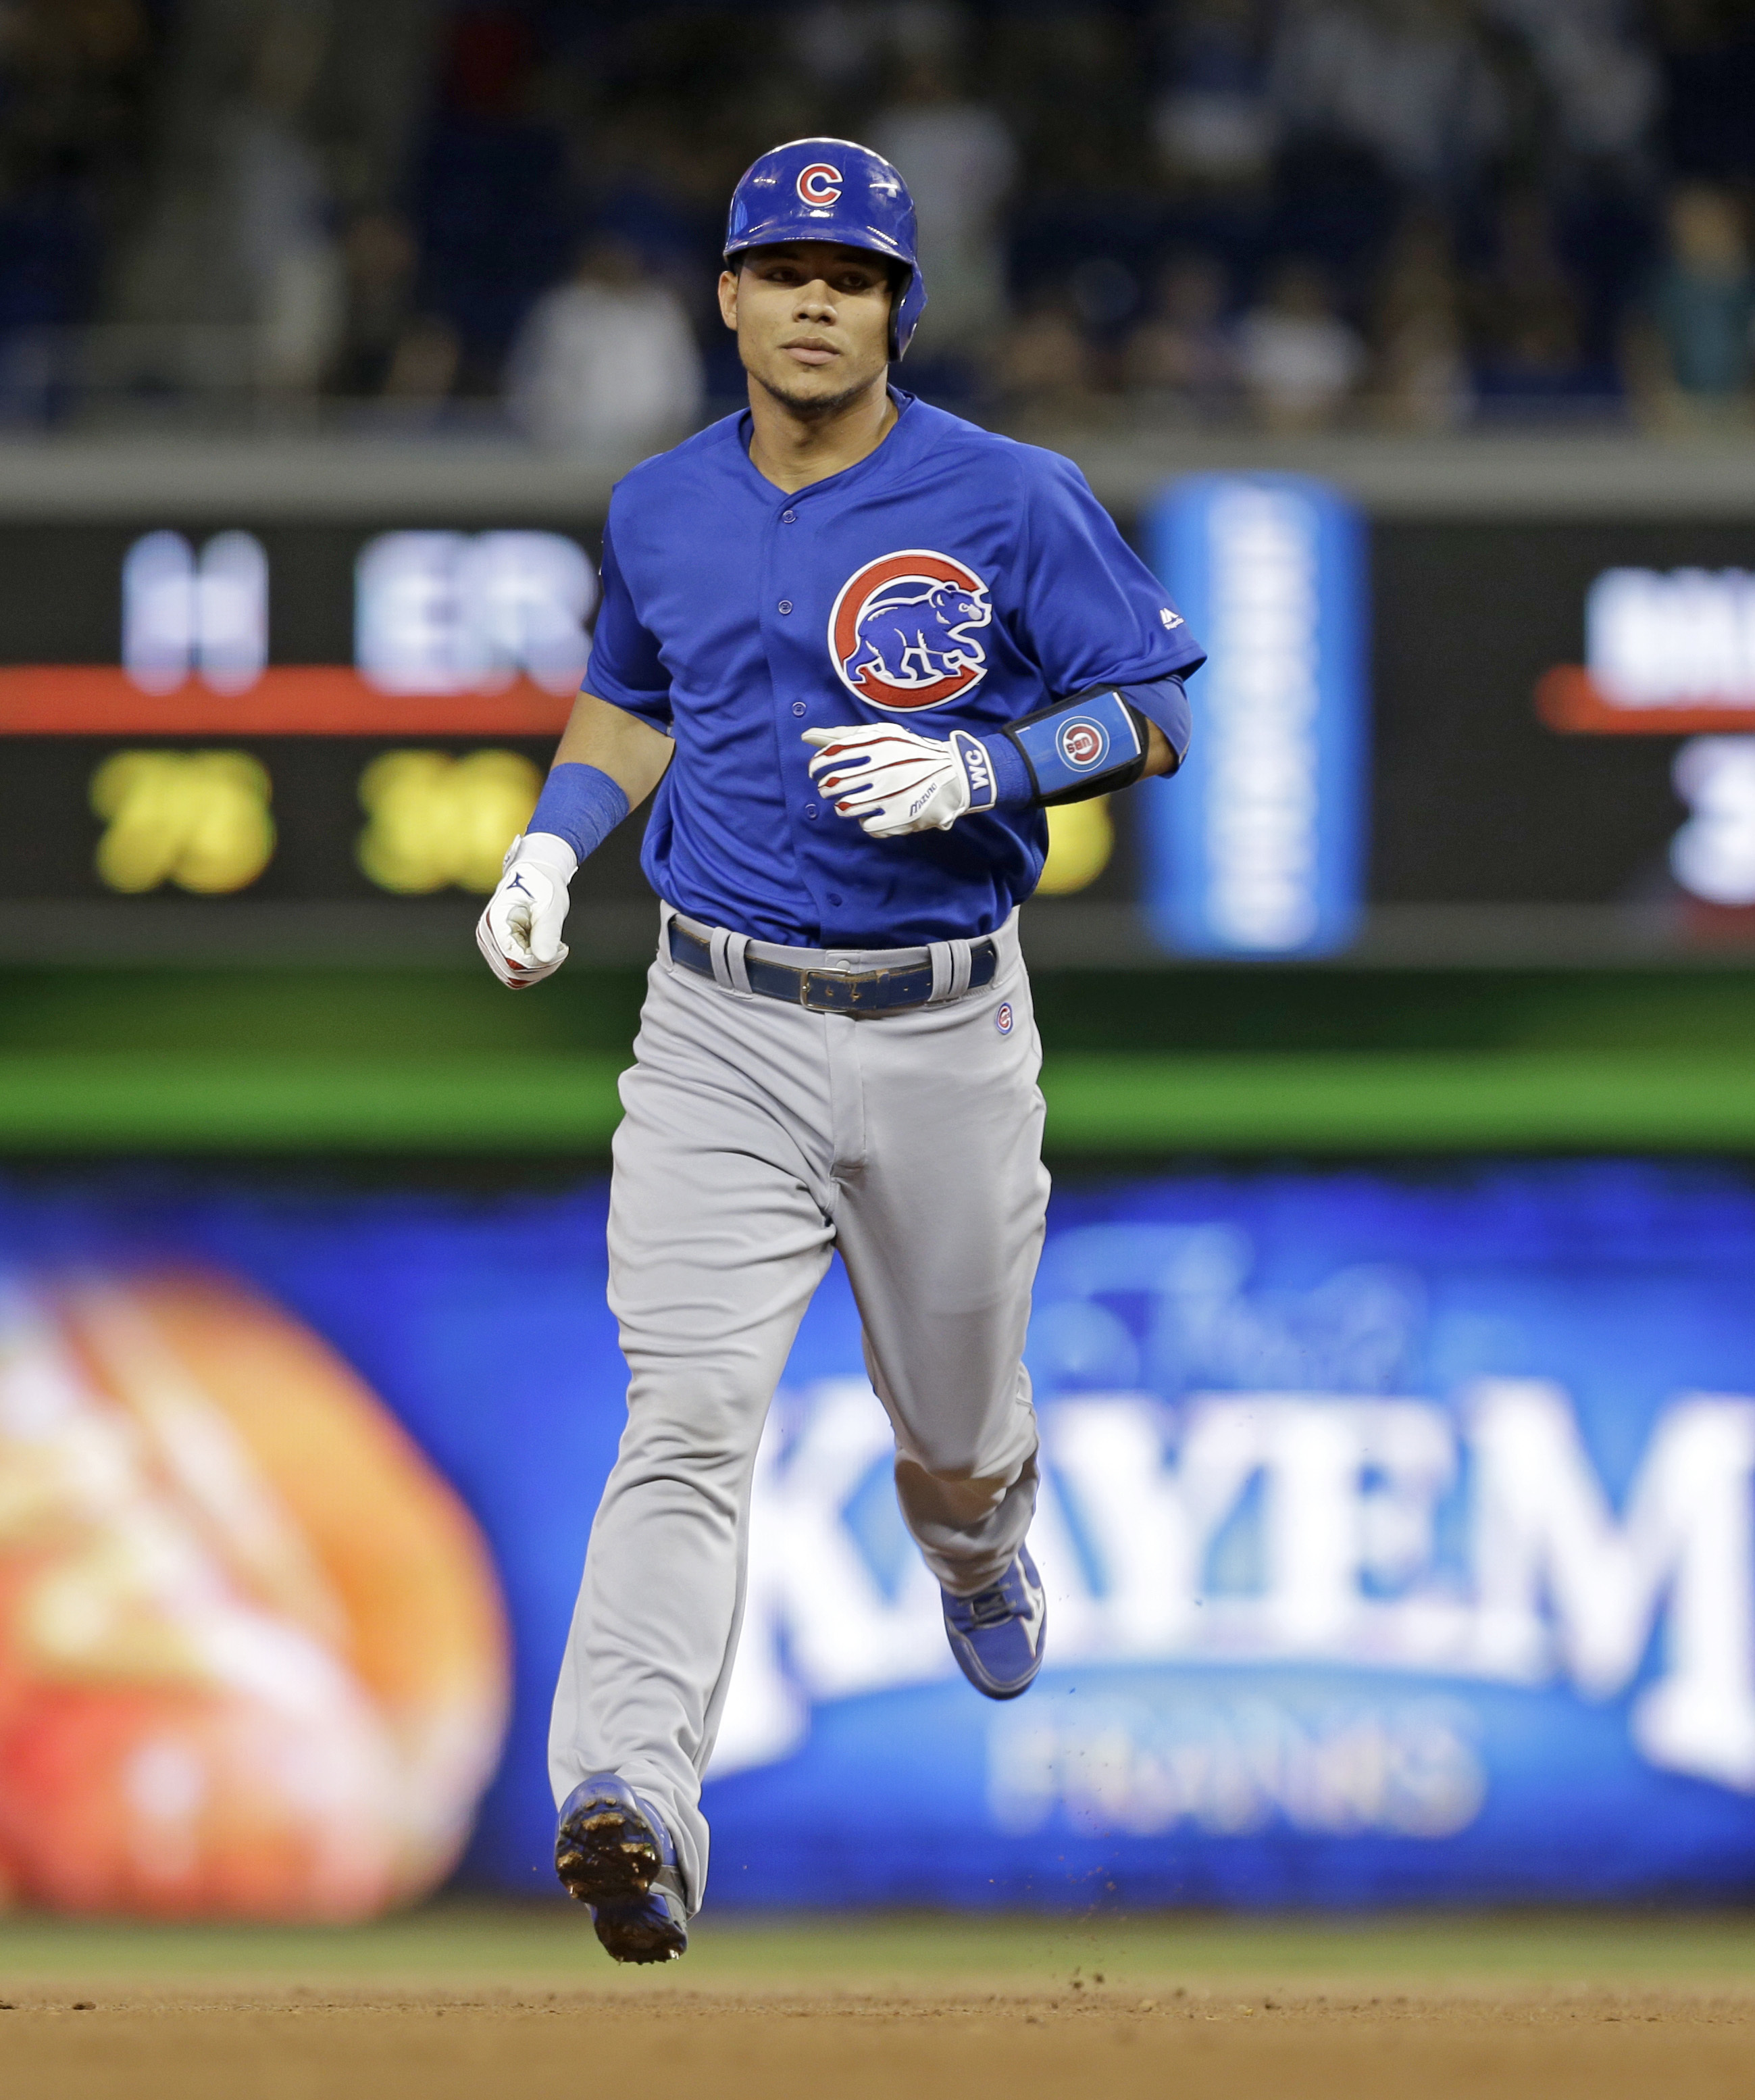 Chicago Cubs' Willson Contreras rounds the bases after hitting a two-run home run against the Miami Marlins in the first inning of a baseball game, Friday, June 24, 2016, in Miami. Ben Zobrist scored on the home run. (AP Photo/Alan Diaz)